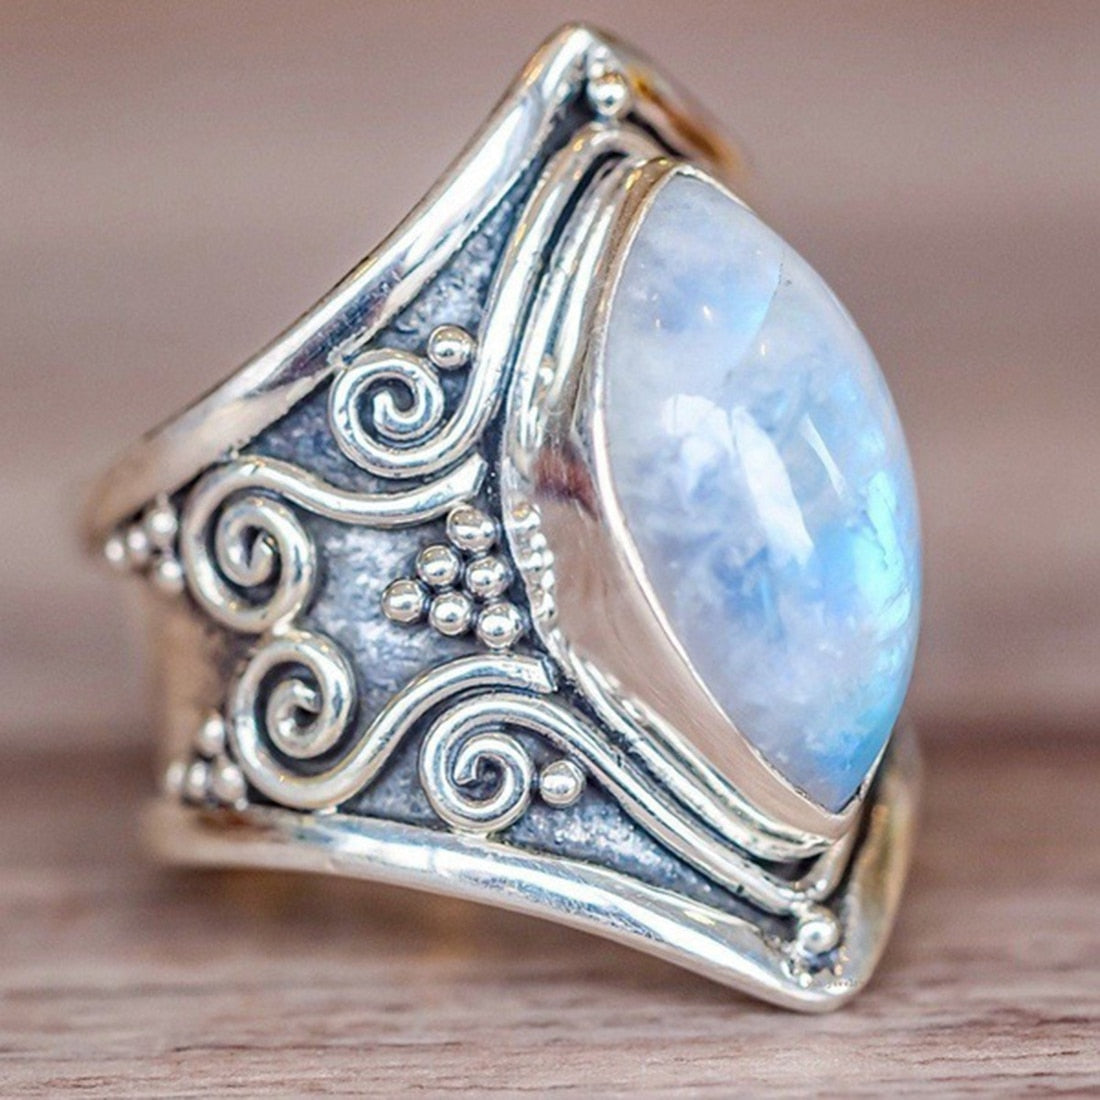 Vintage Silver Big Stone Ring for Women Fashion Bohemian Boho Jewelry 2018 New Hot